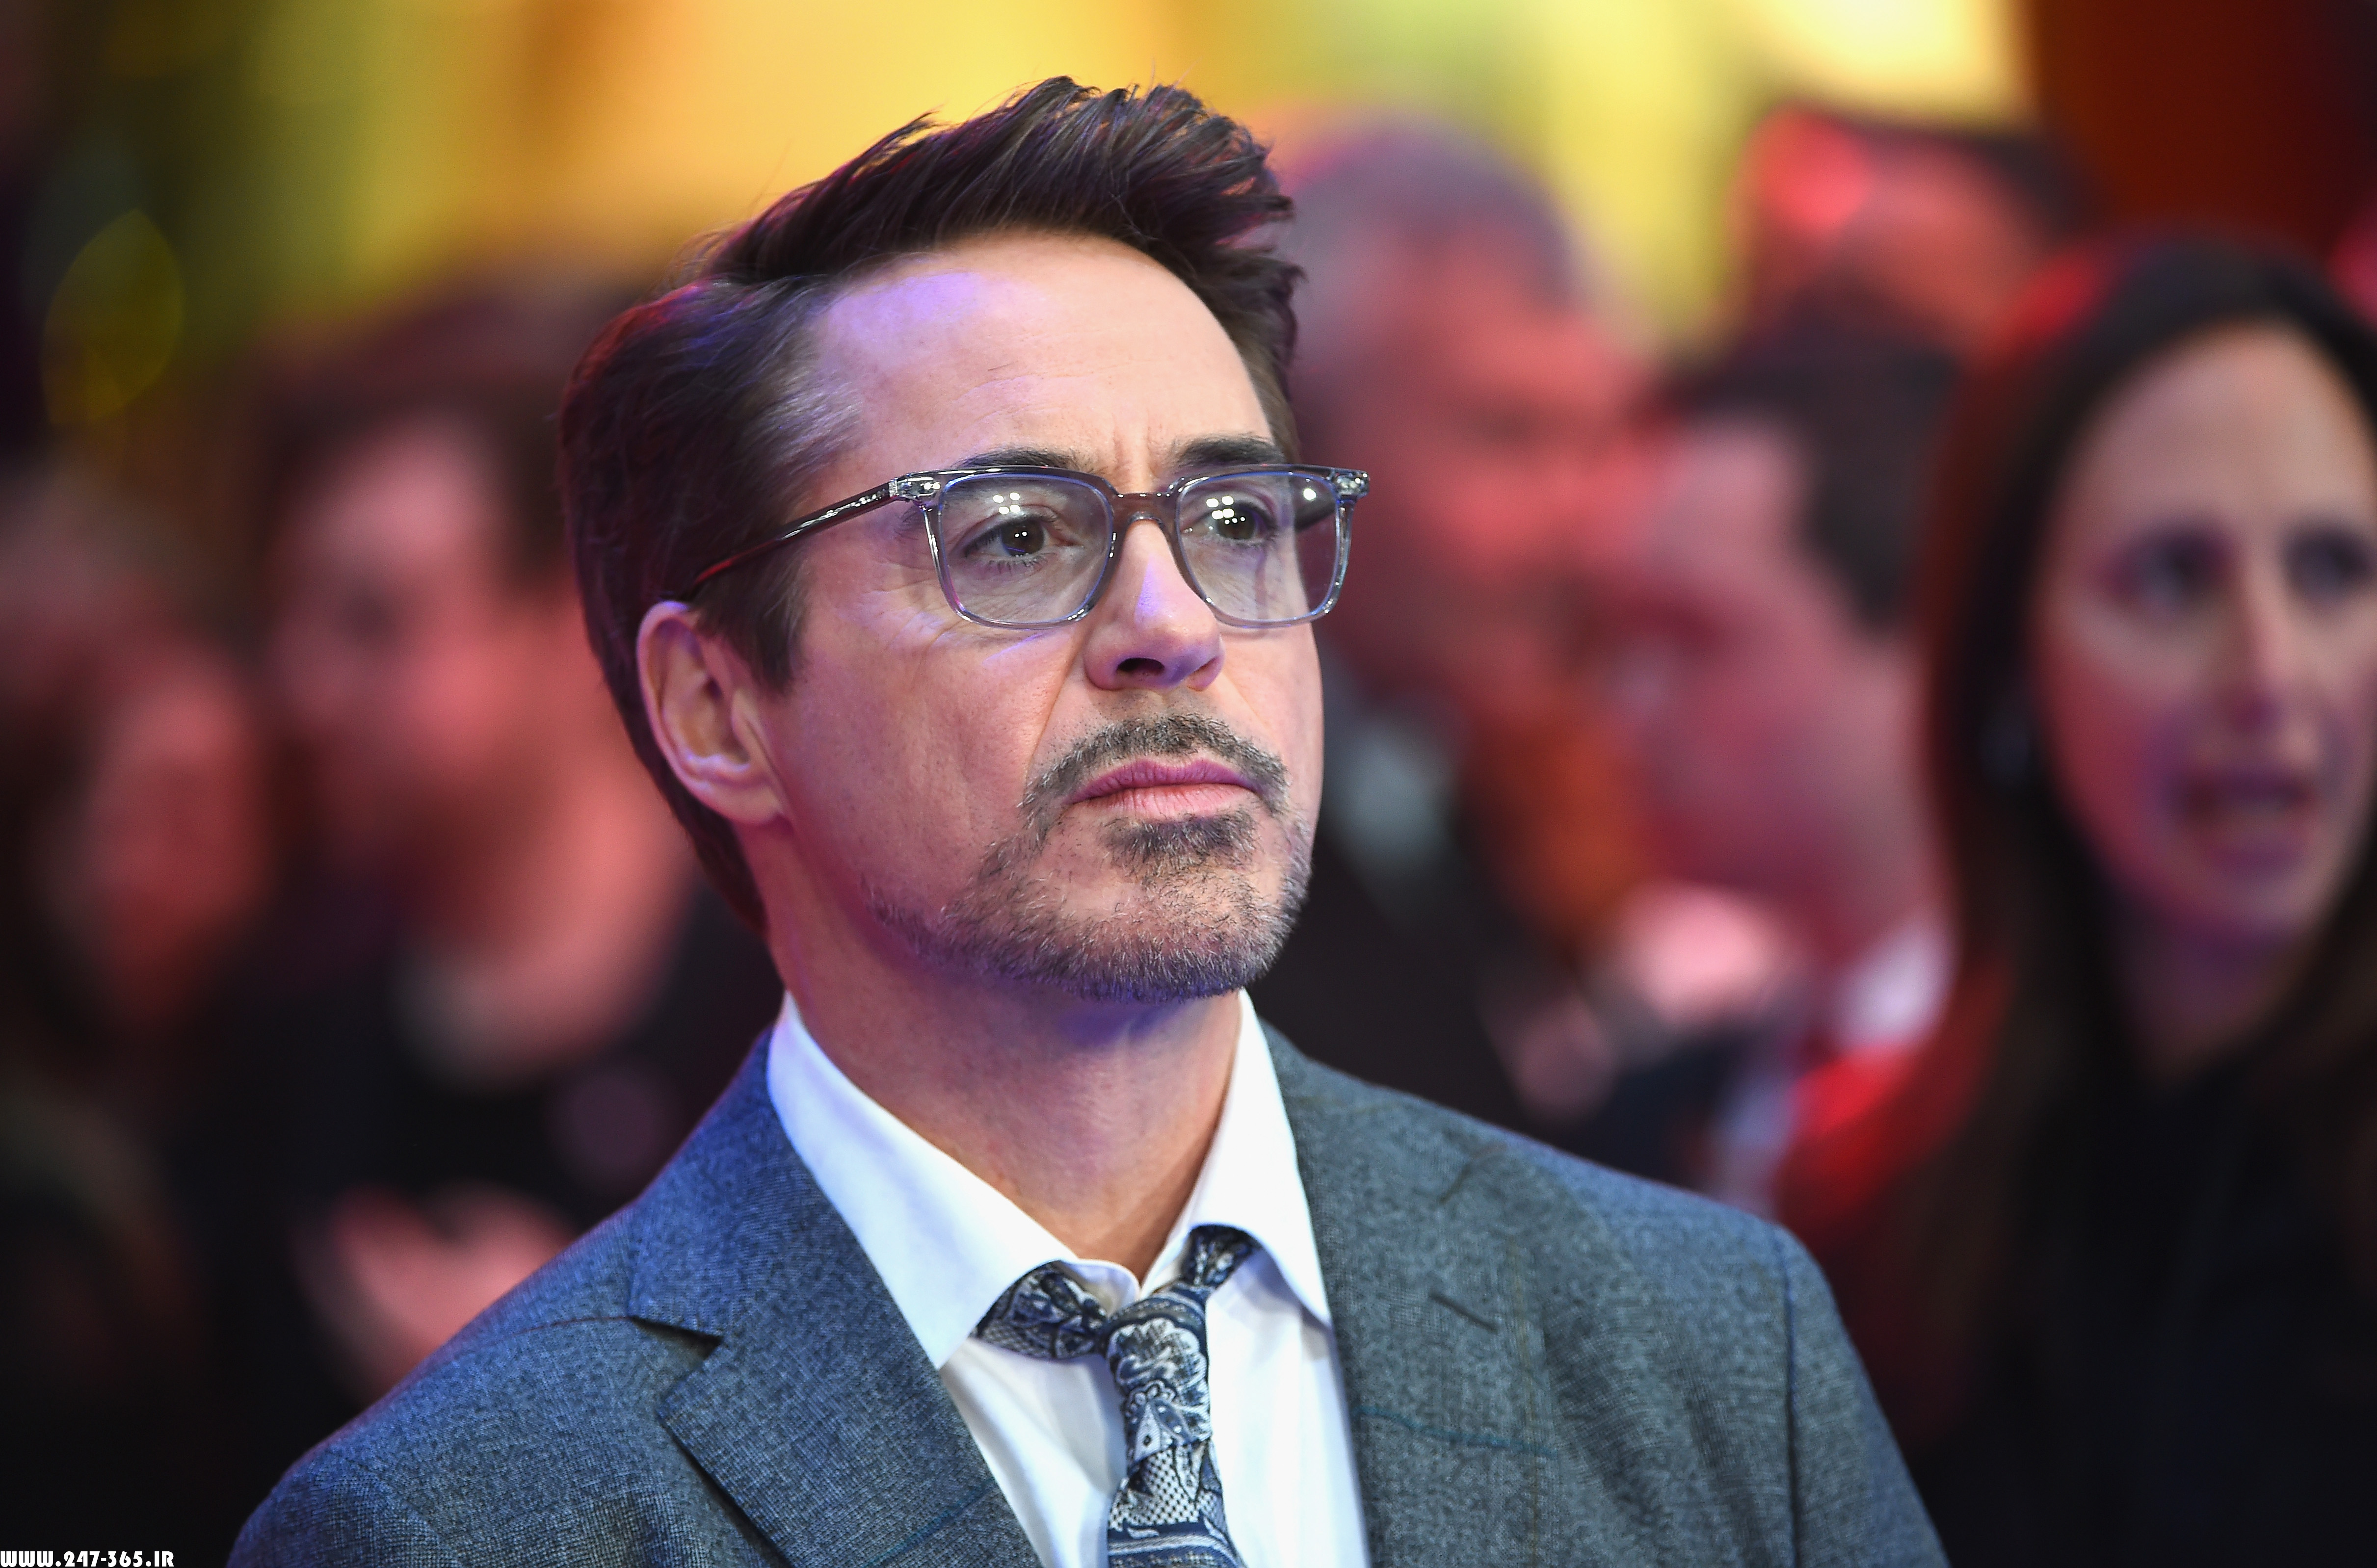 http://dl.247-365.ir/pic/celebrity/robert_downey_jr_2/Robert_Downey_Jr_2_10.jpg